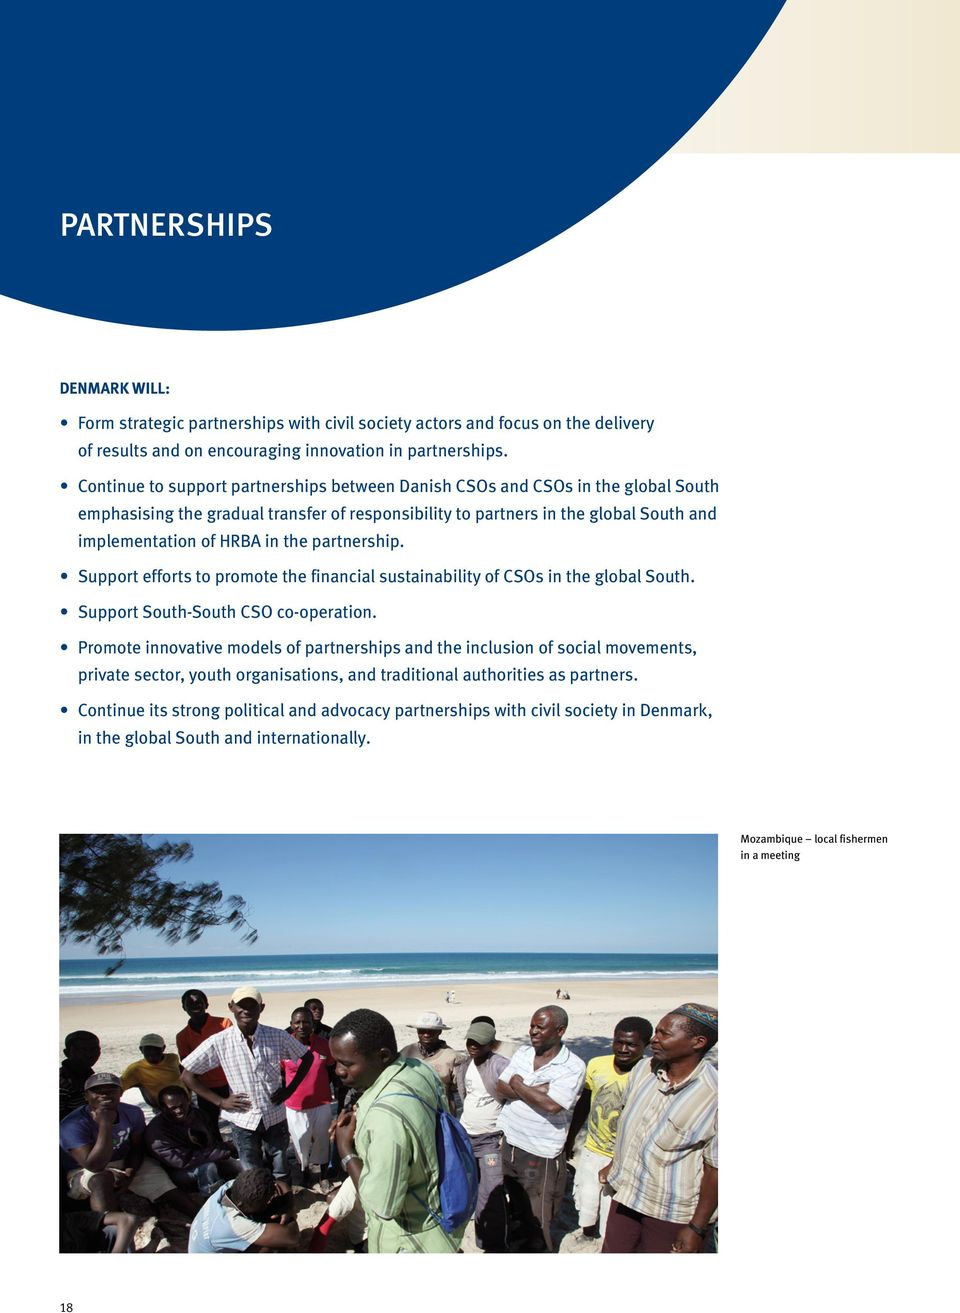 partnership. Support efforts to promote the financial sustainability of CSOs in the global South. Support South-South CSO co- operation.